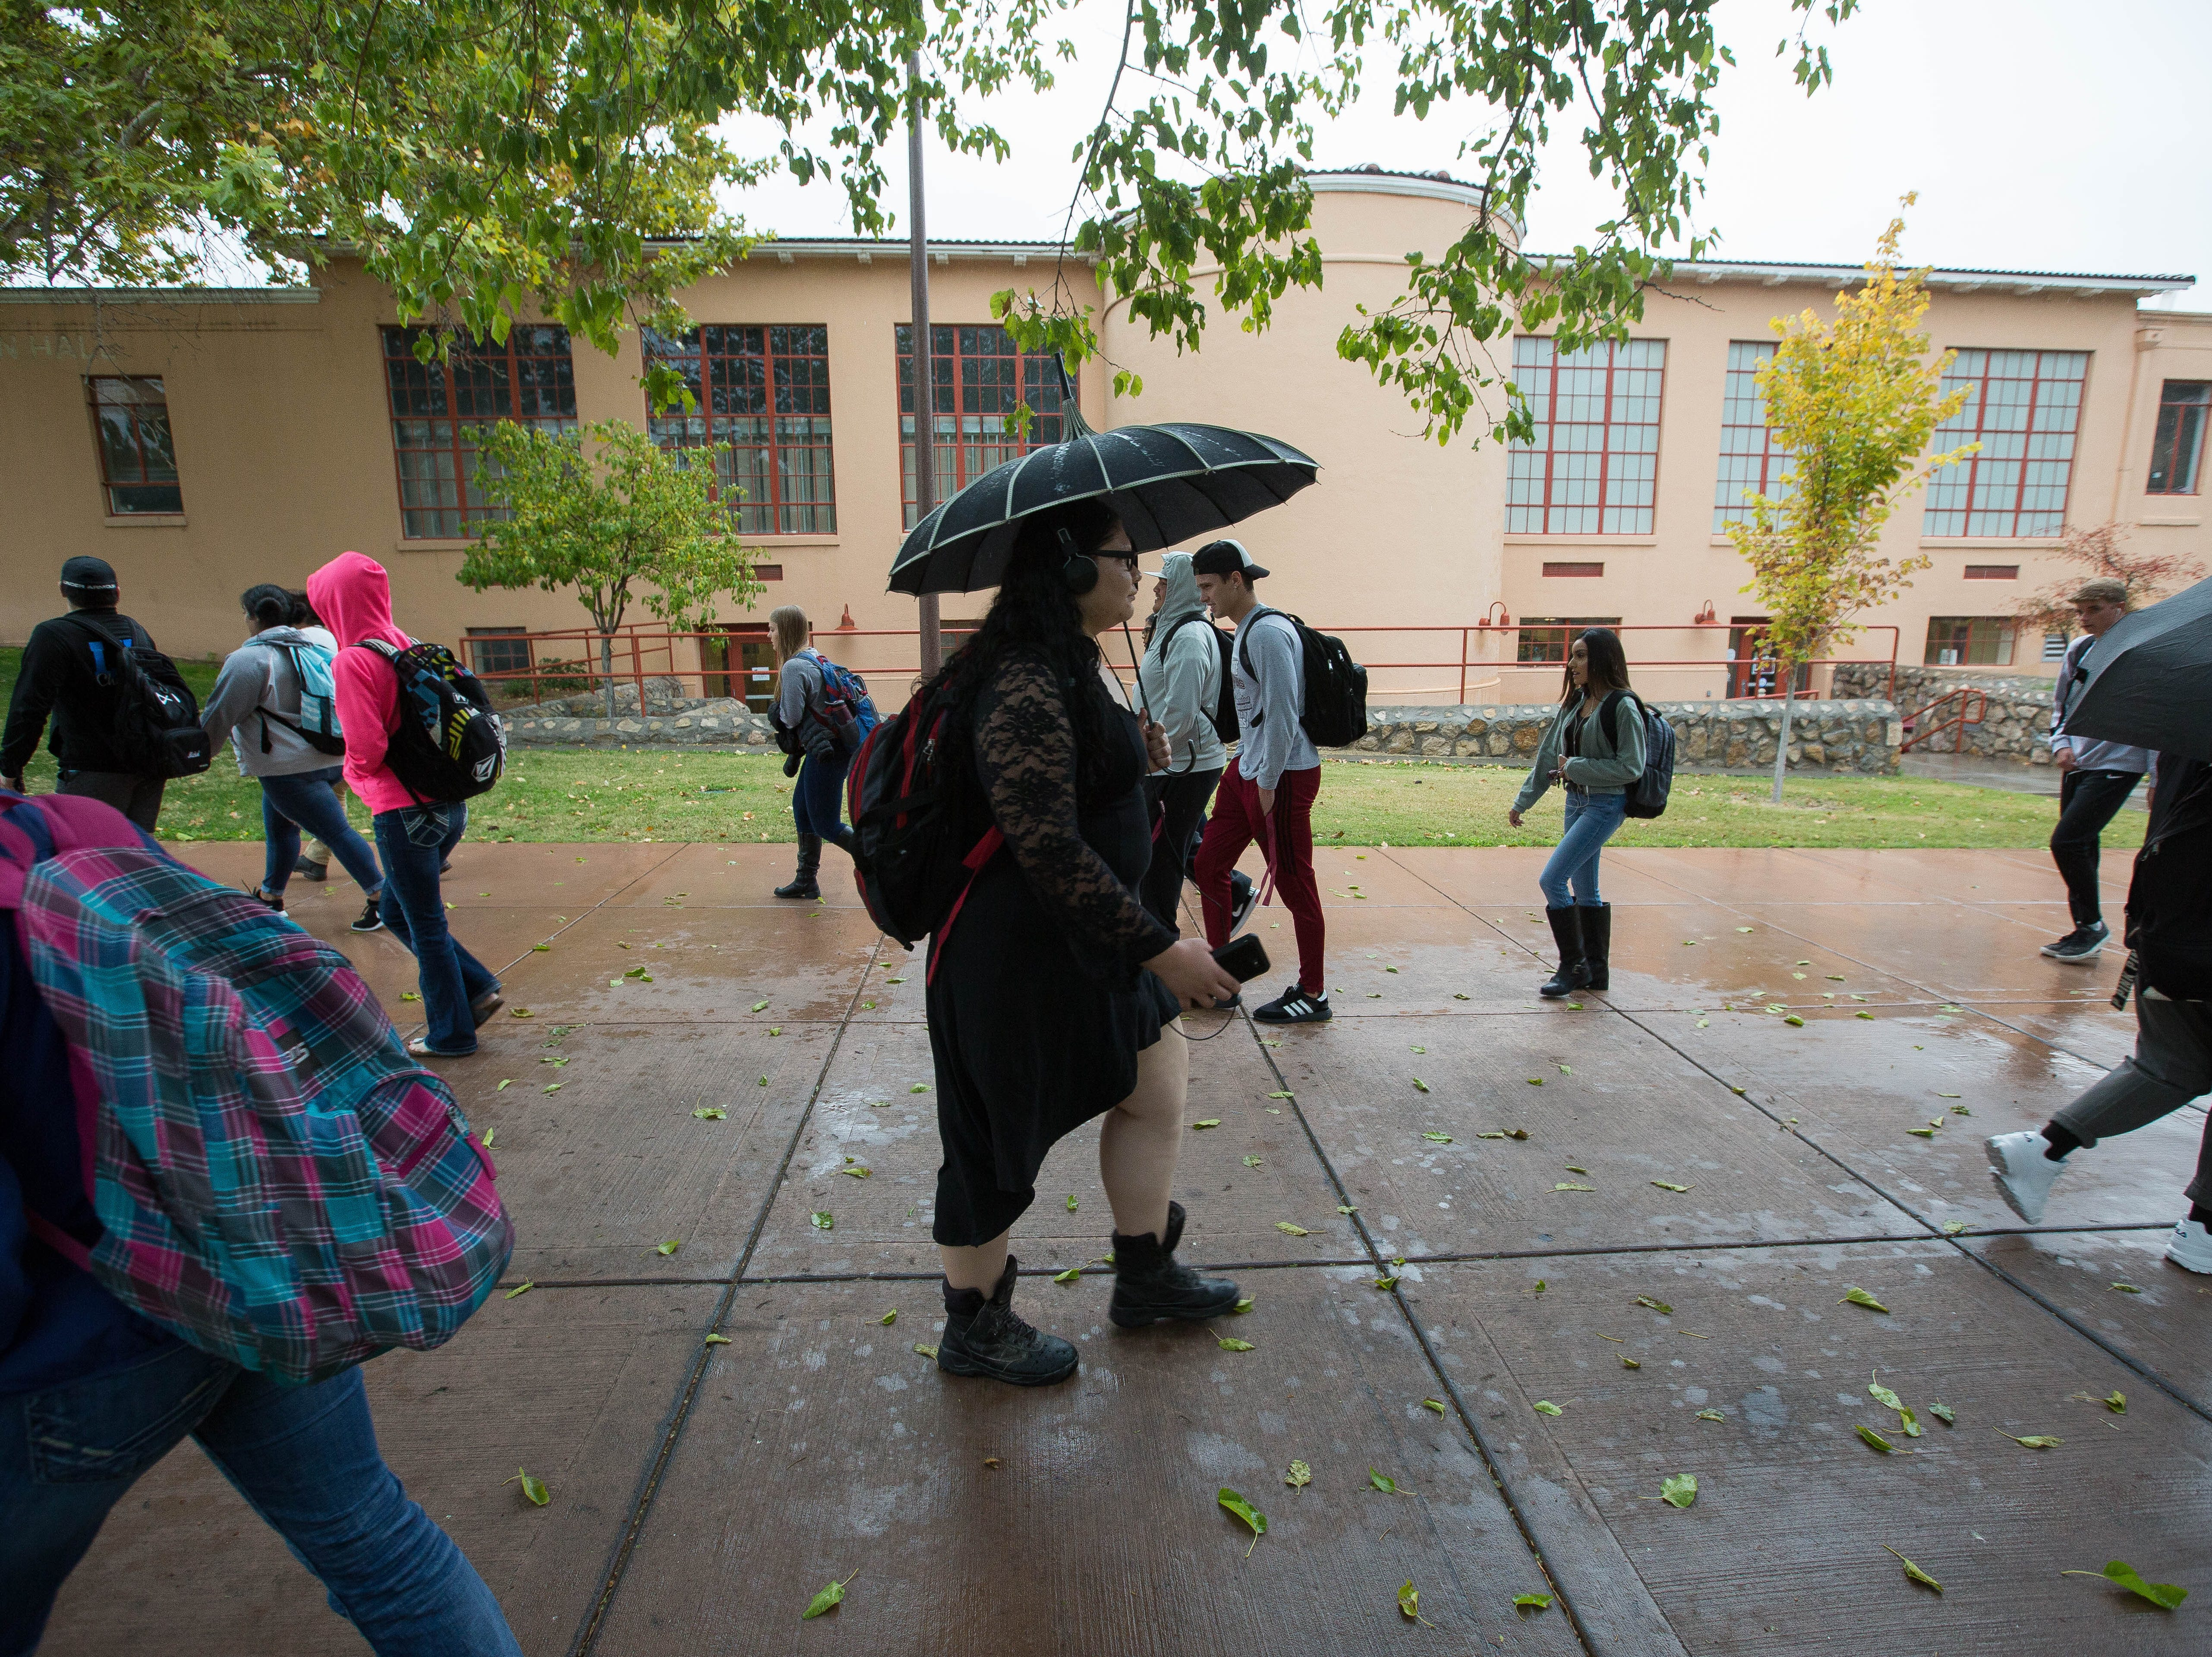 New Mexico State University students  walking through the rain between classes, Tuesday October 23, 2018.